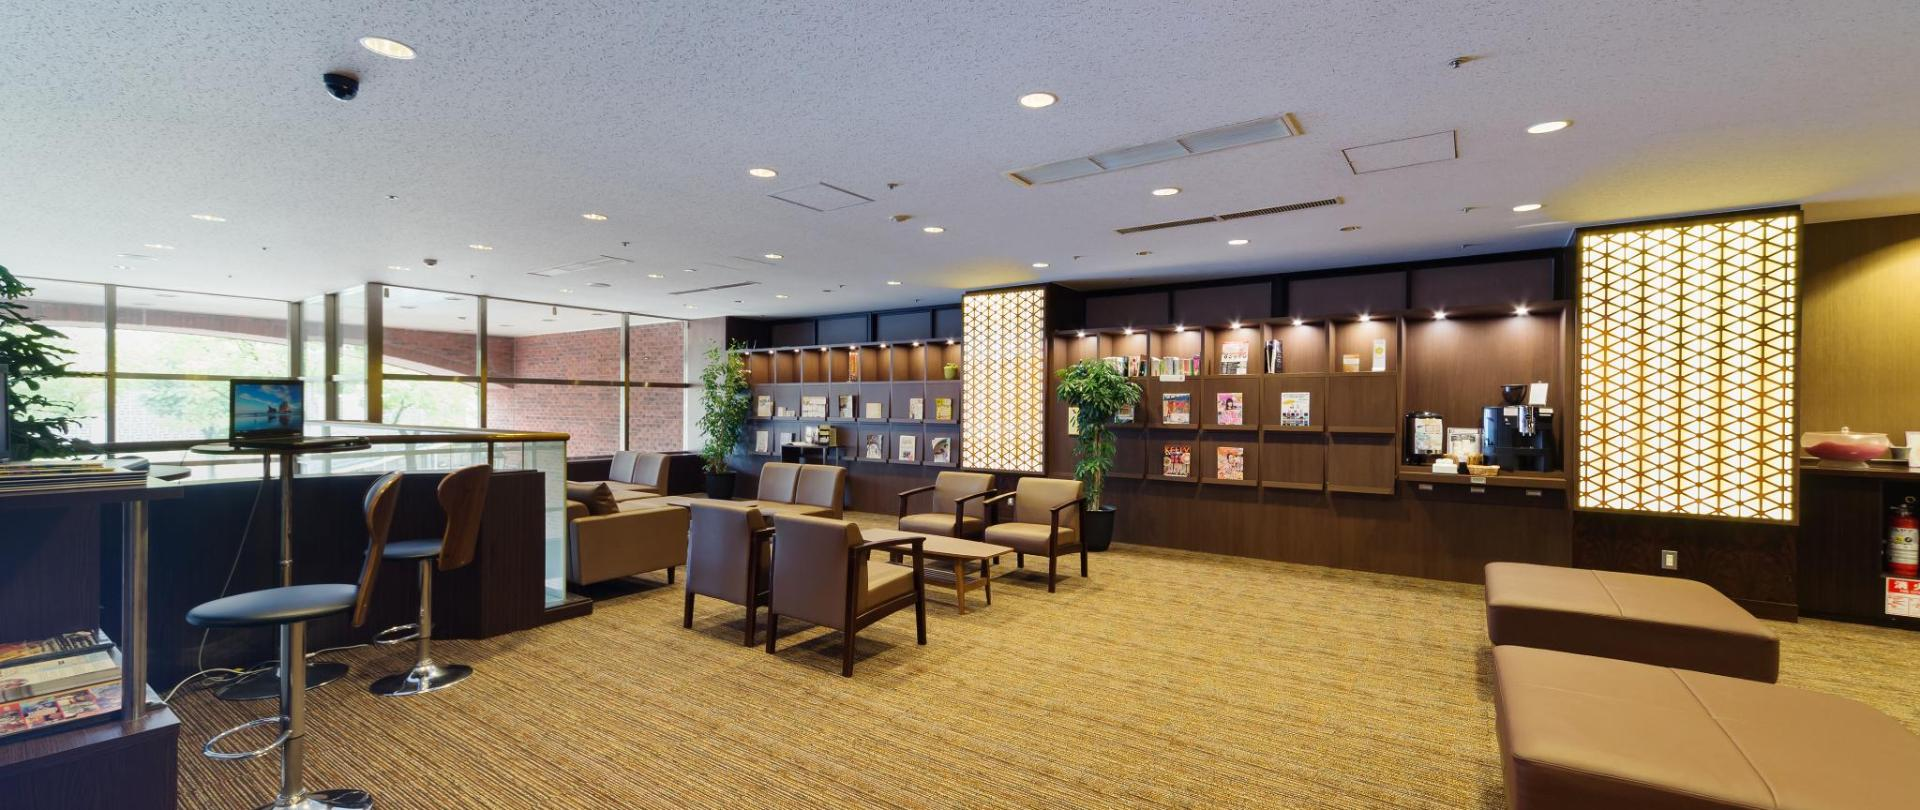 Hotel Wing International Nagoya